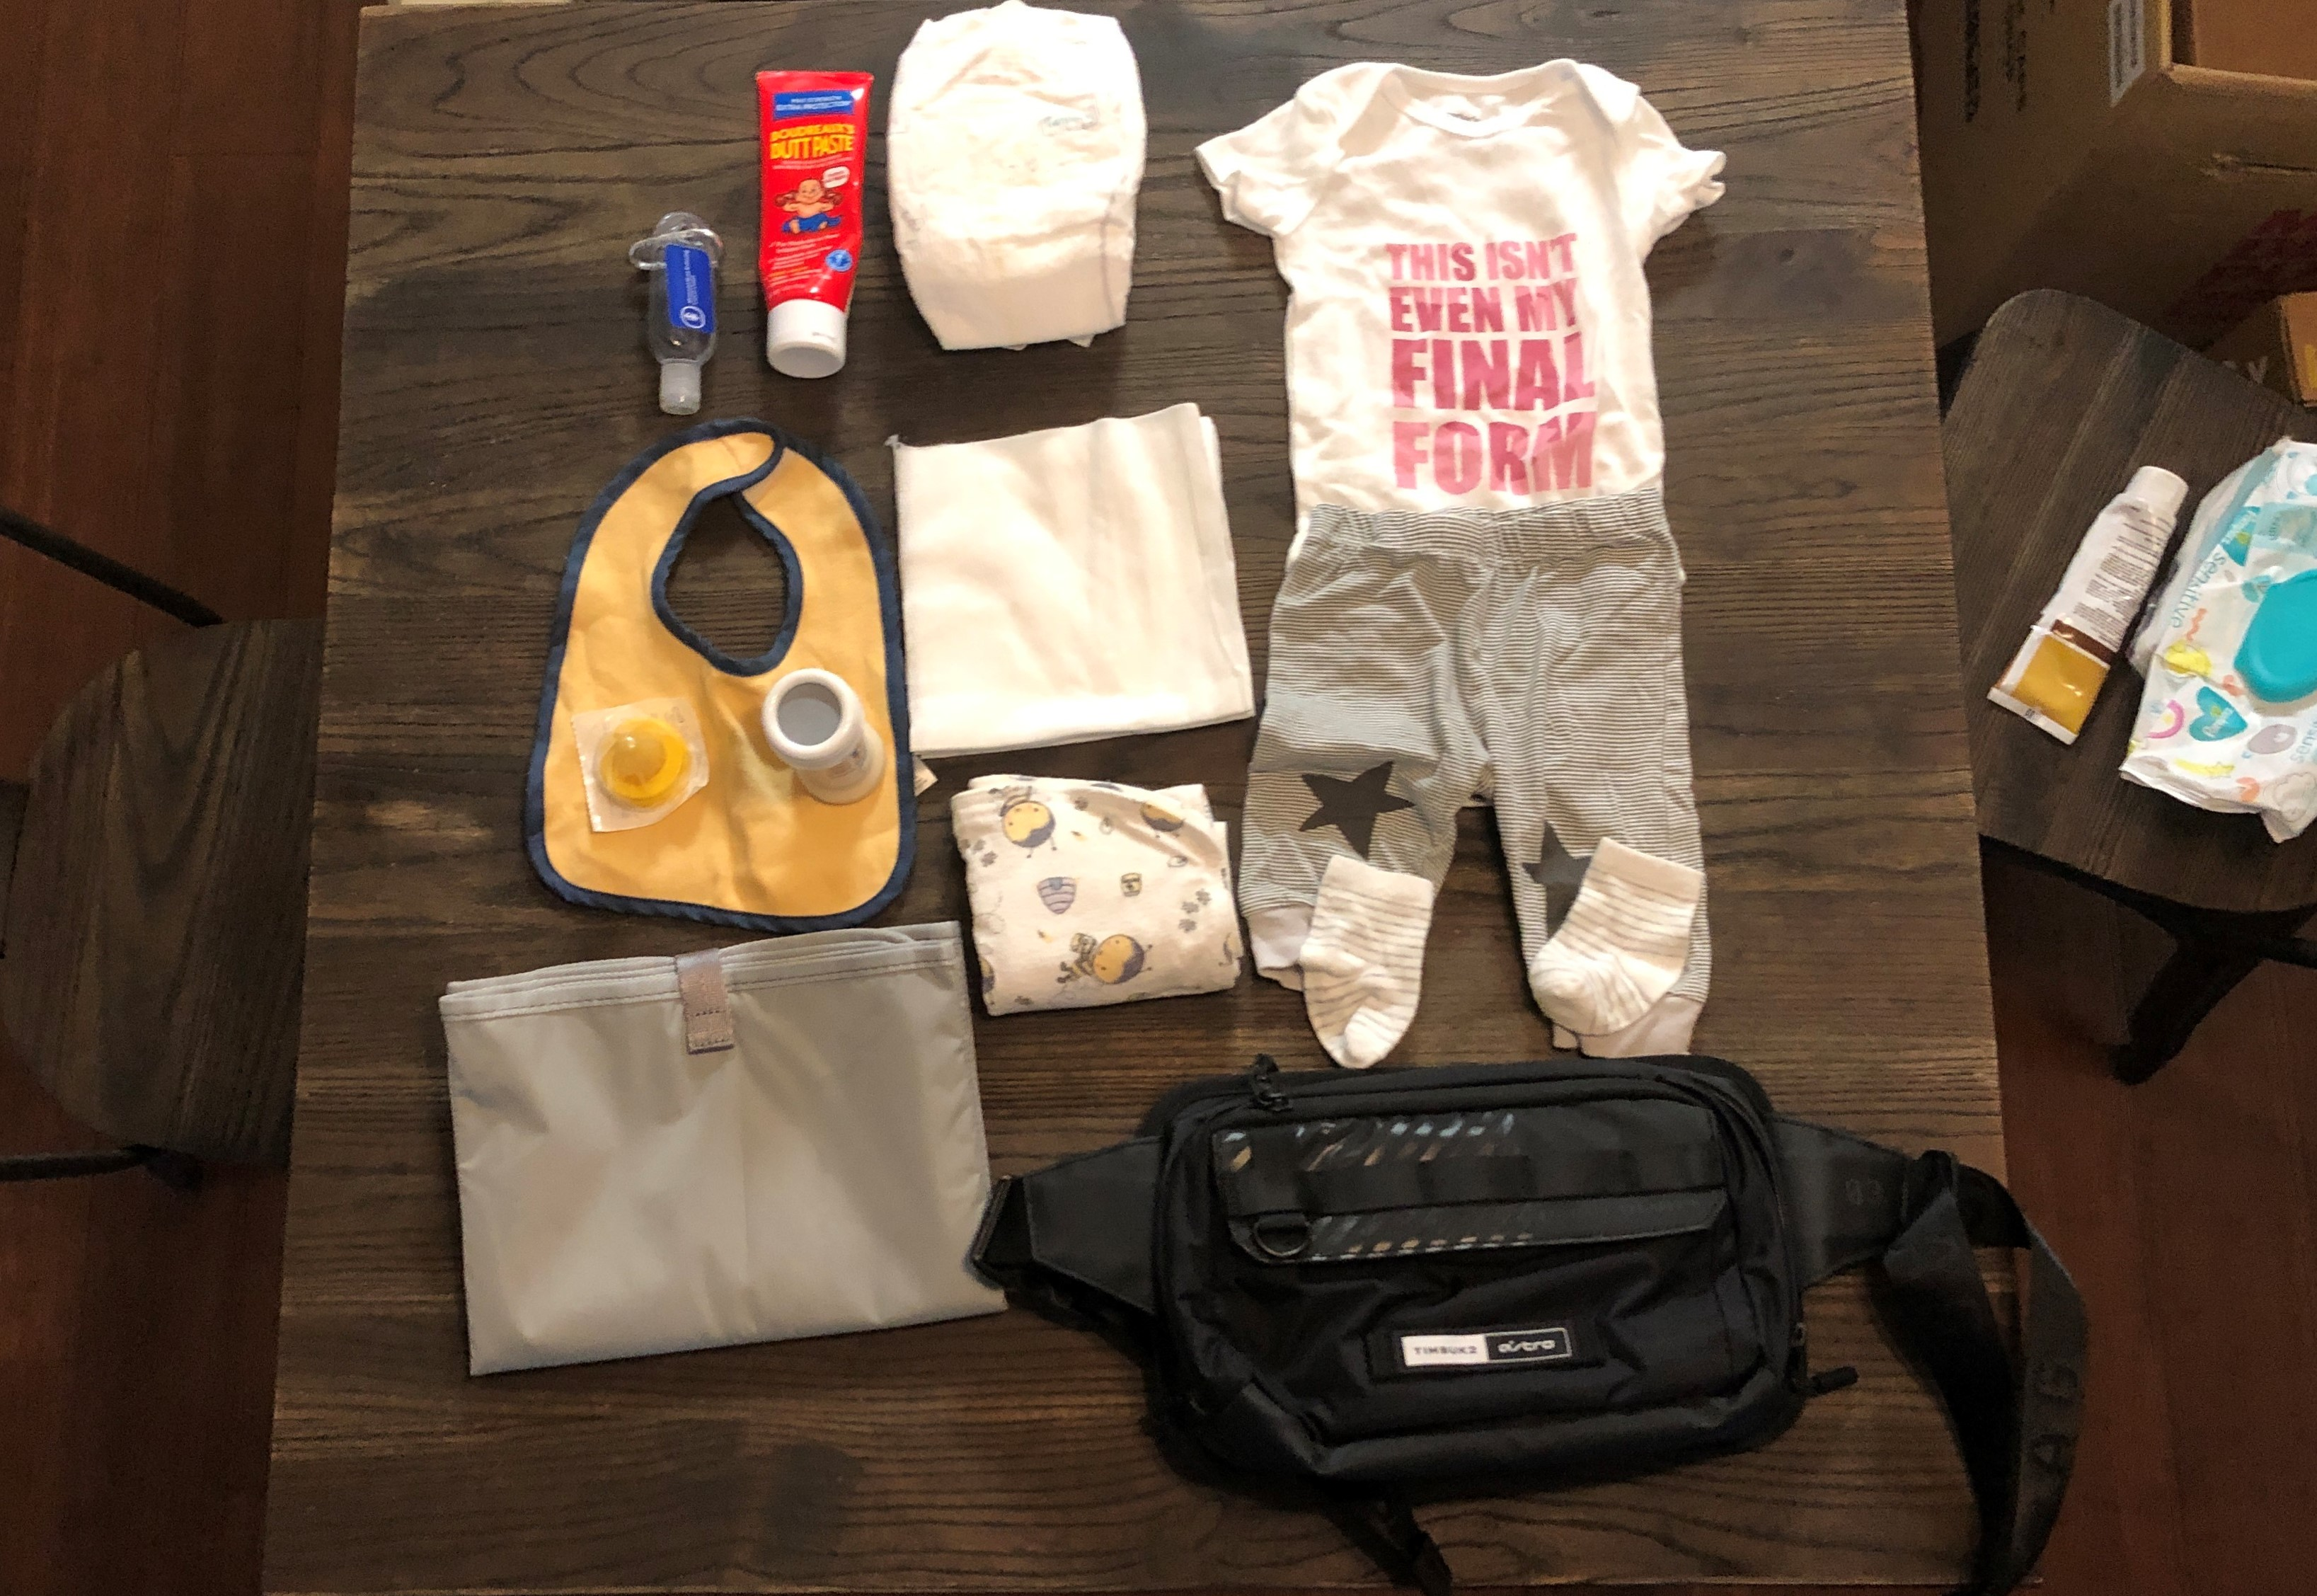 Cross body bag on table with various baby items.